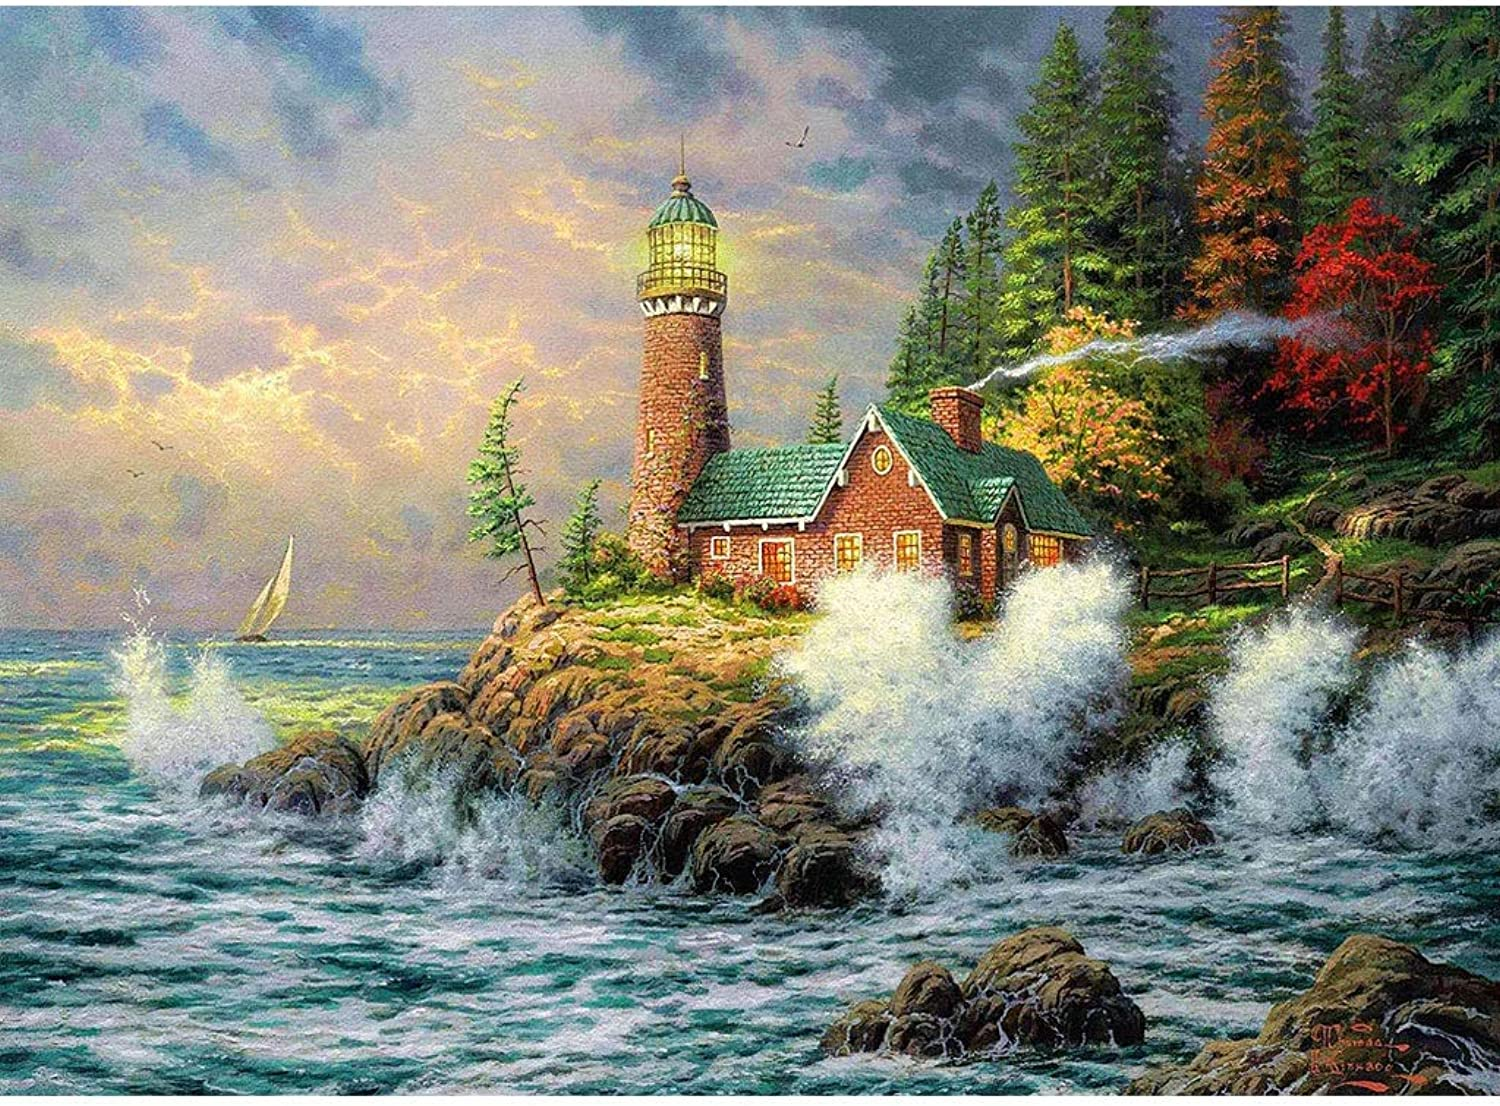 Puzzle House Wooden Jigsaw Puzzle, Lighthouse Storm Cottage, 520 1000 1500 Pieces Puzzles Game for Adults & Kids 401 ( Size   500pc )